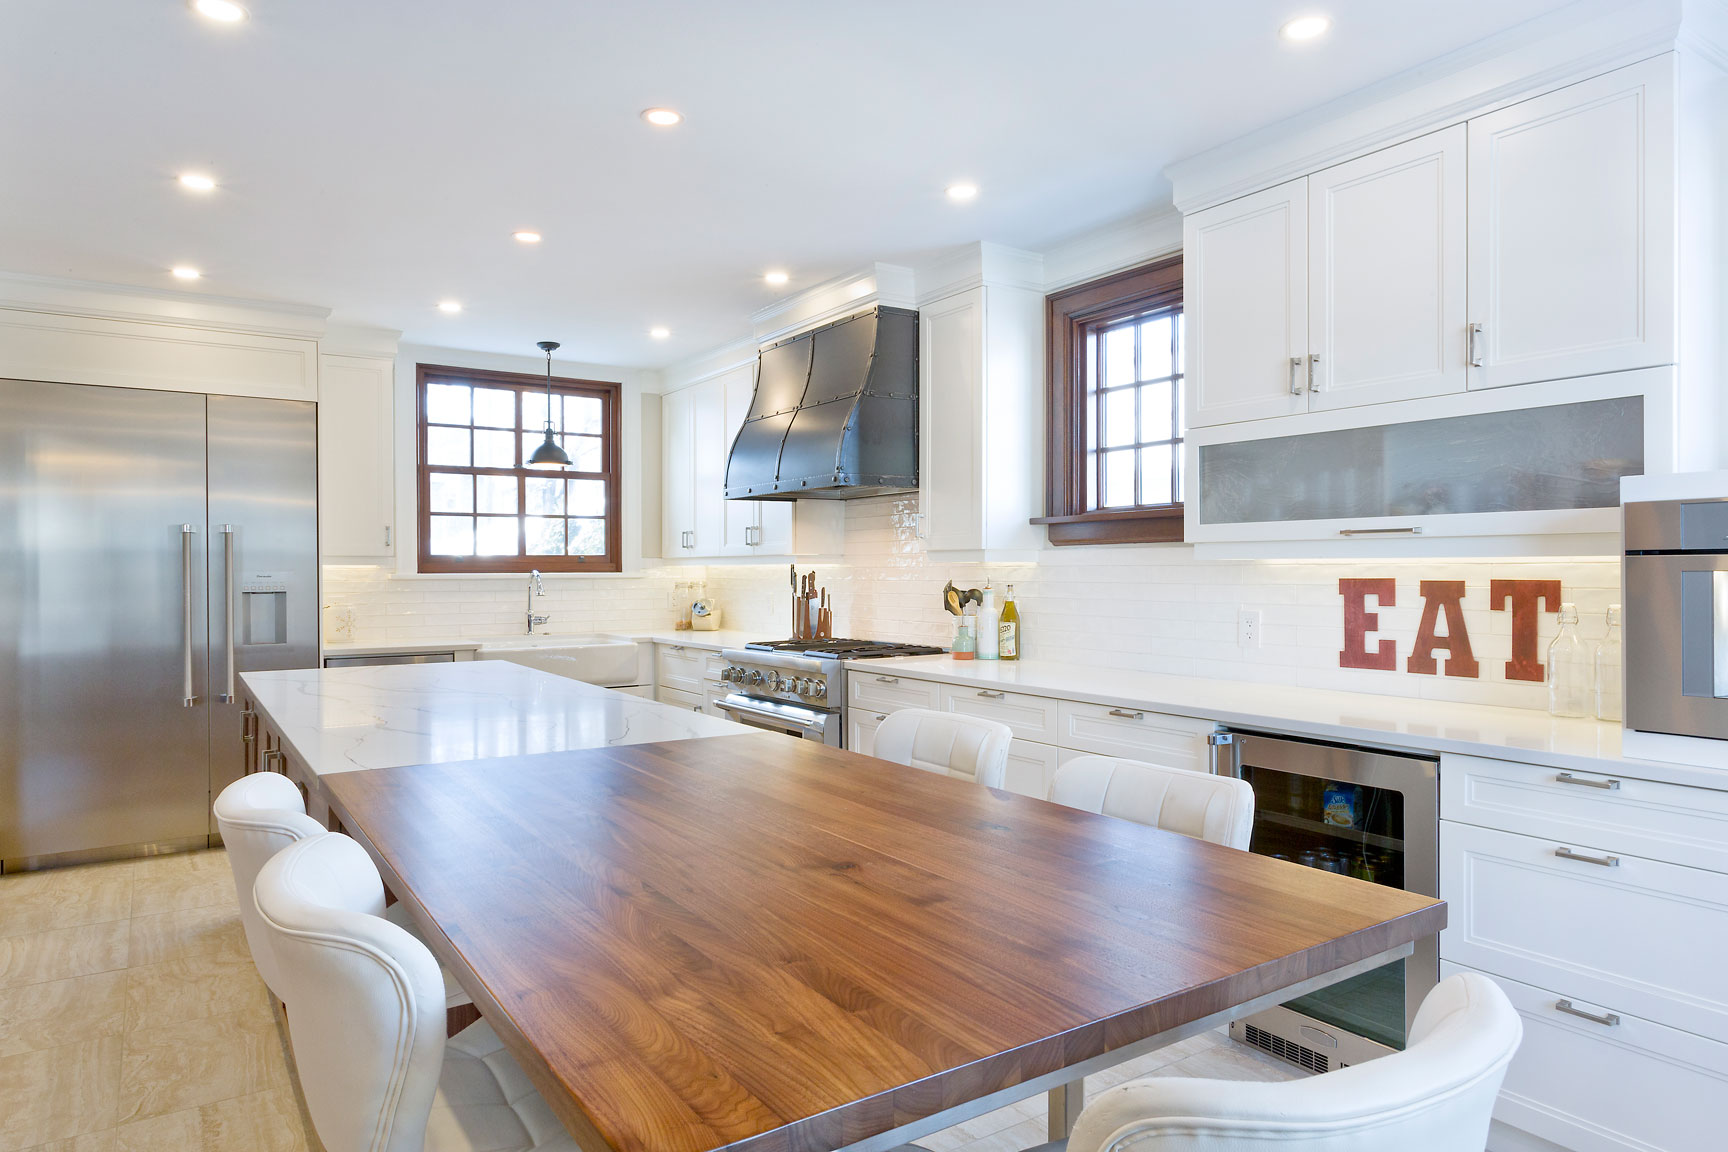 North River Heights - Whole Home Renovation